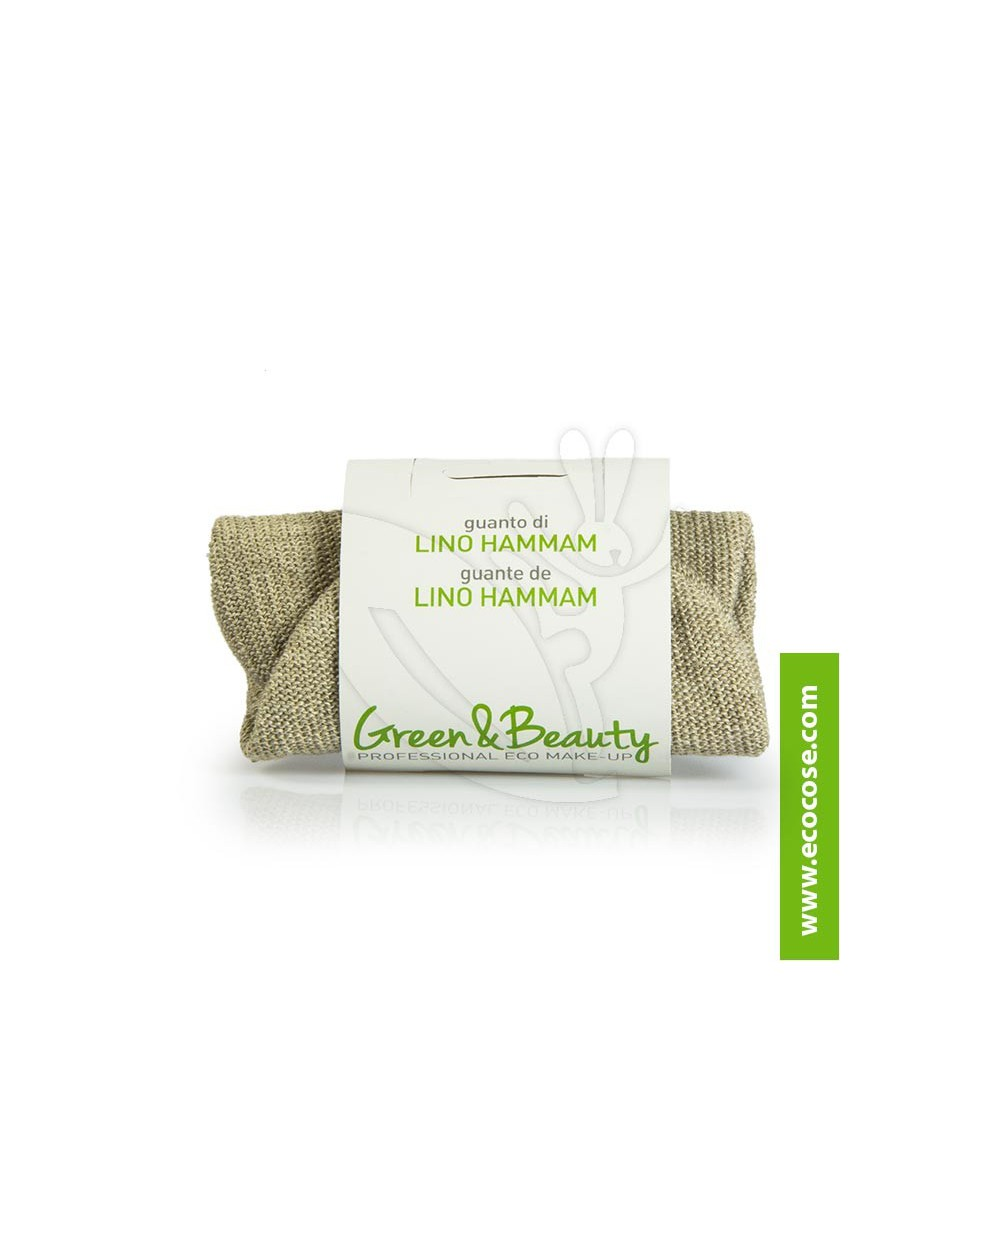 Green&Beauty - Guanto in lino Hammam